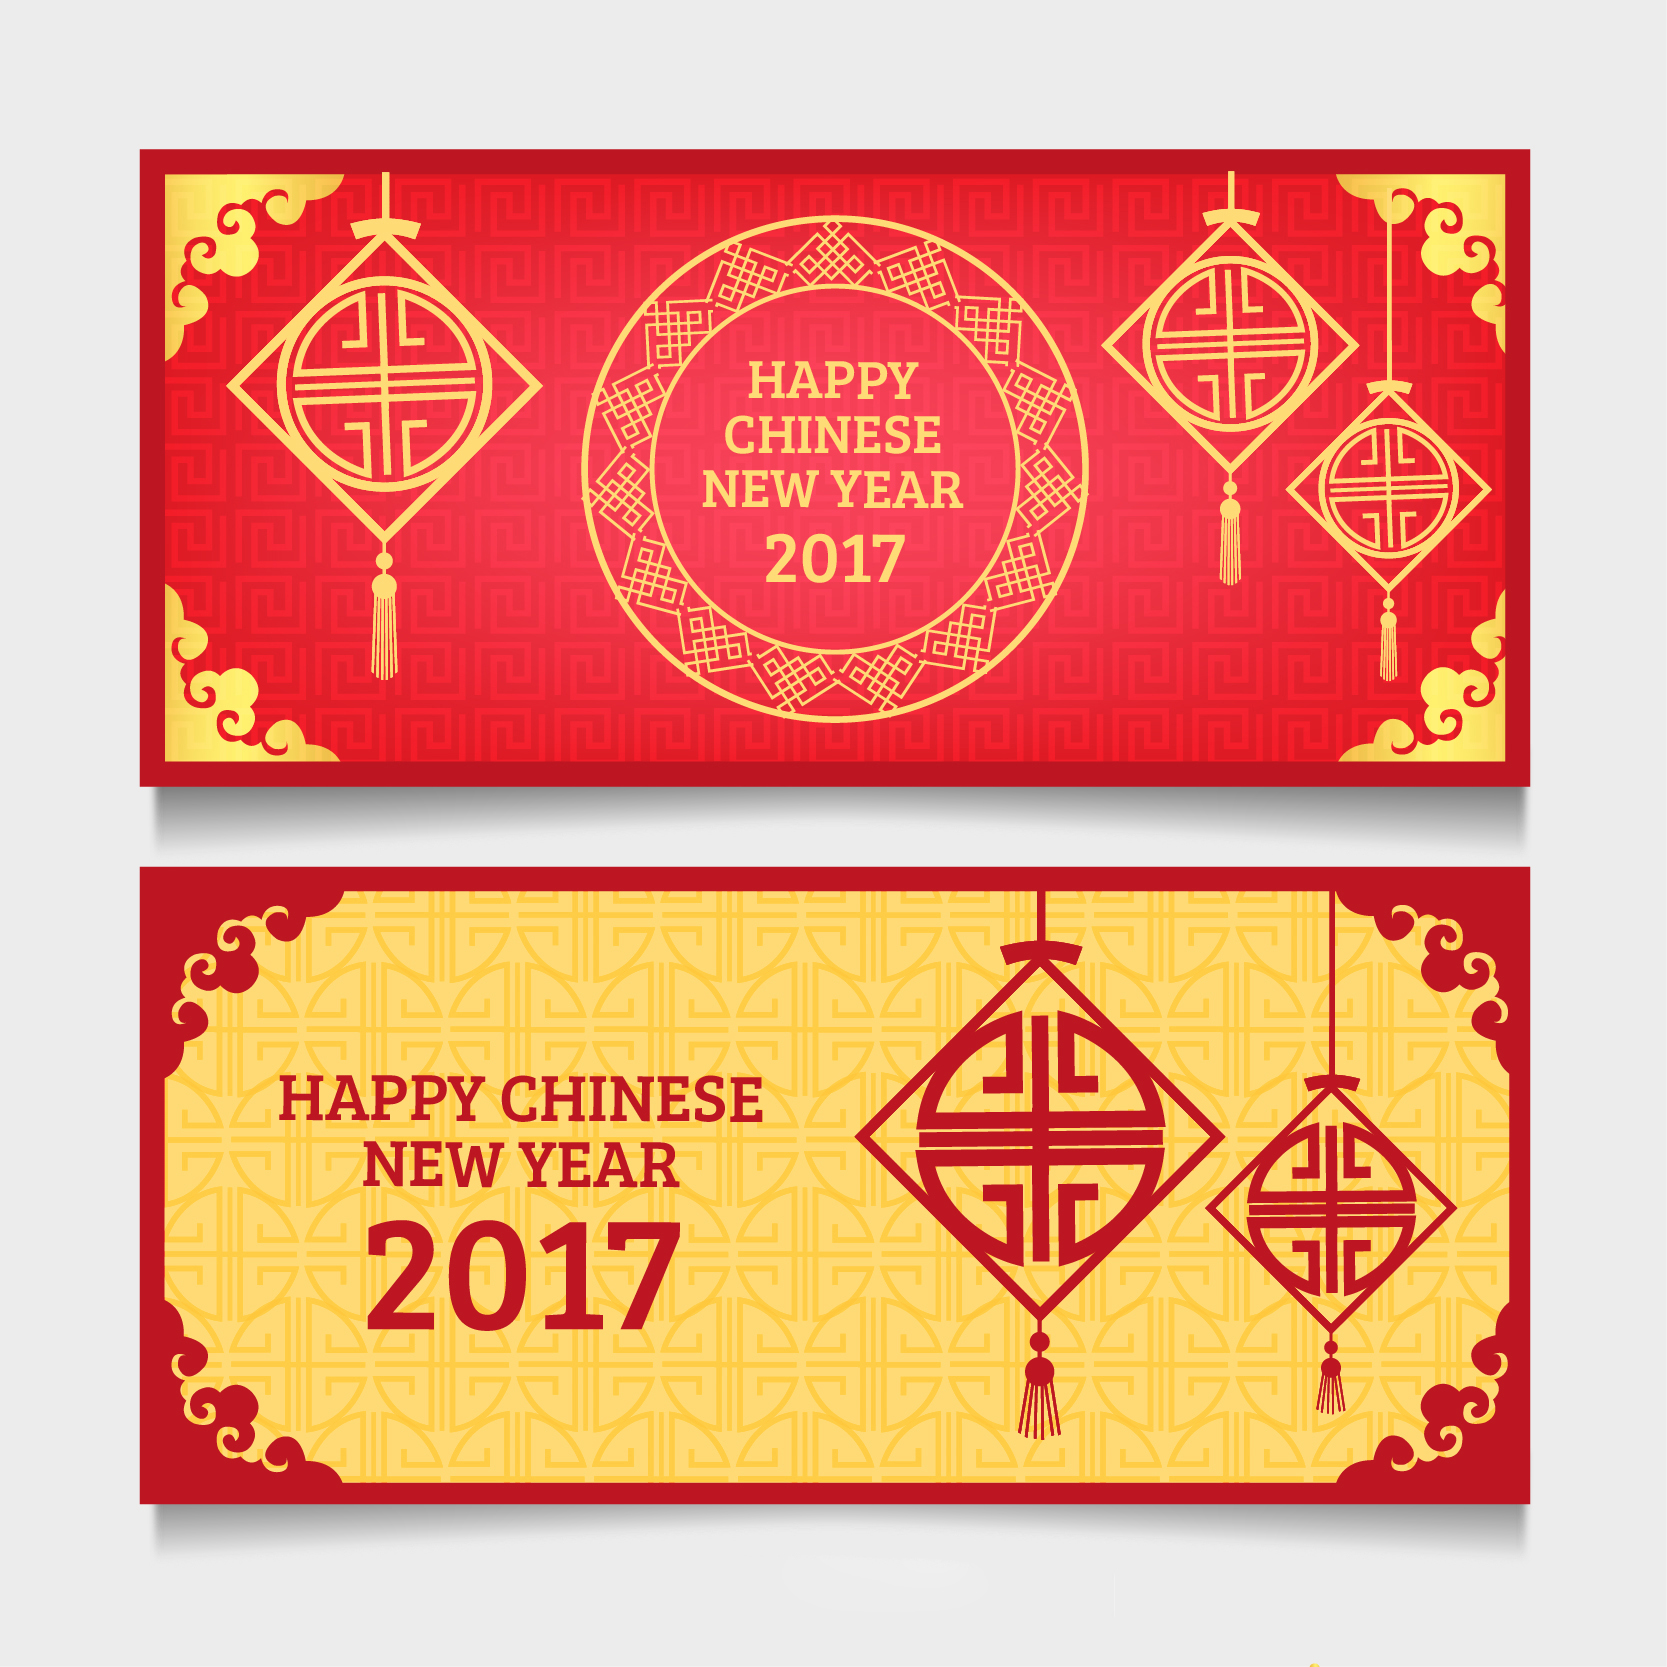 2019新年农历猪年贺卡矢量素材模板 2019 New Year Lunar Year Of The Pig Greeting Card Vector Material Template插图(1)